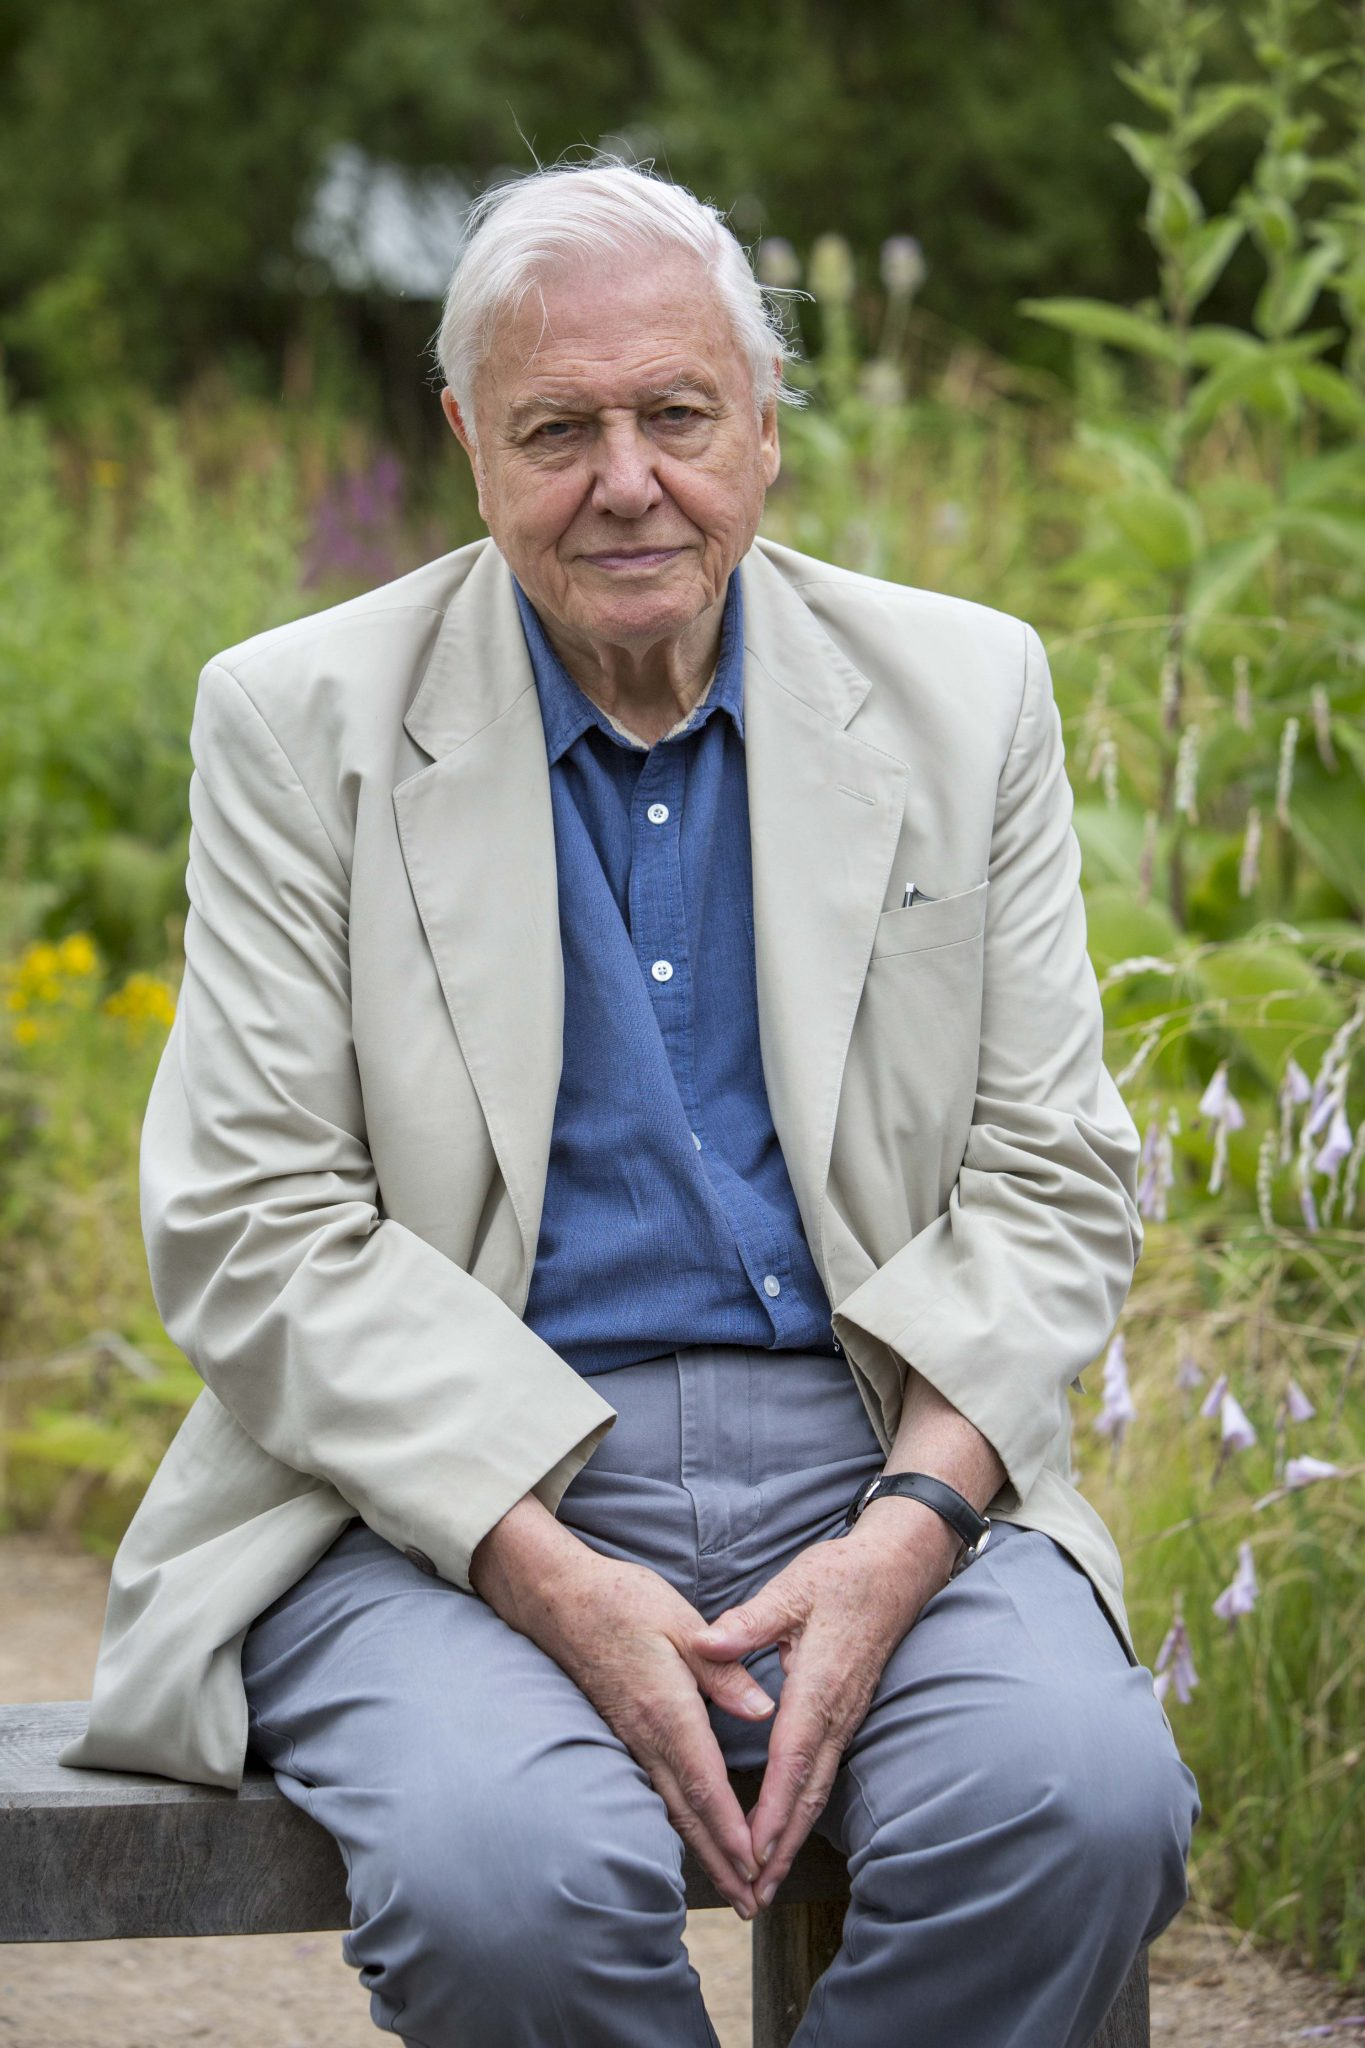 Sir David Attenborough backs butterfly charity as it celebrates 50th anniversary weekend